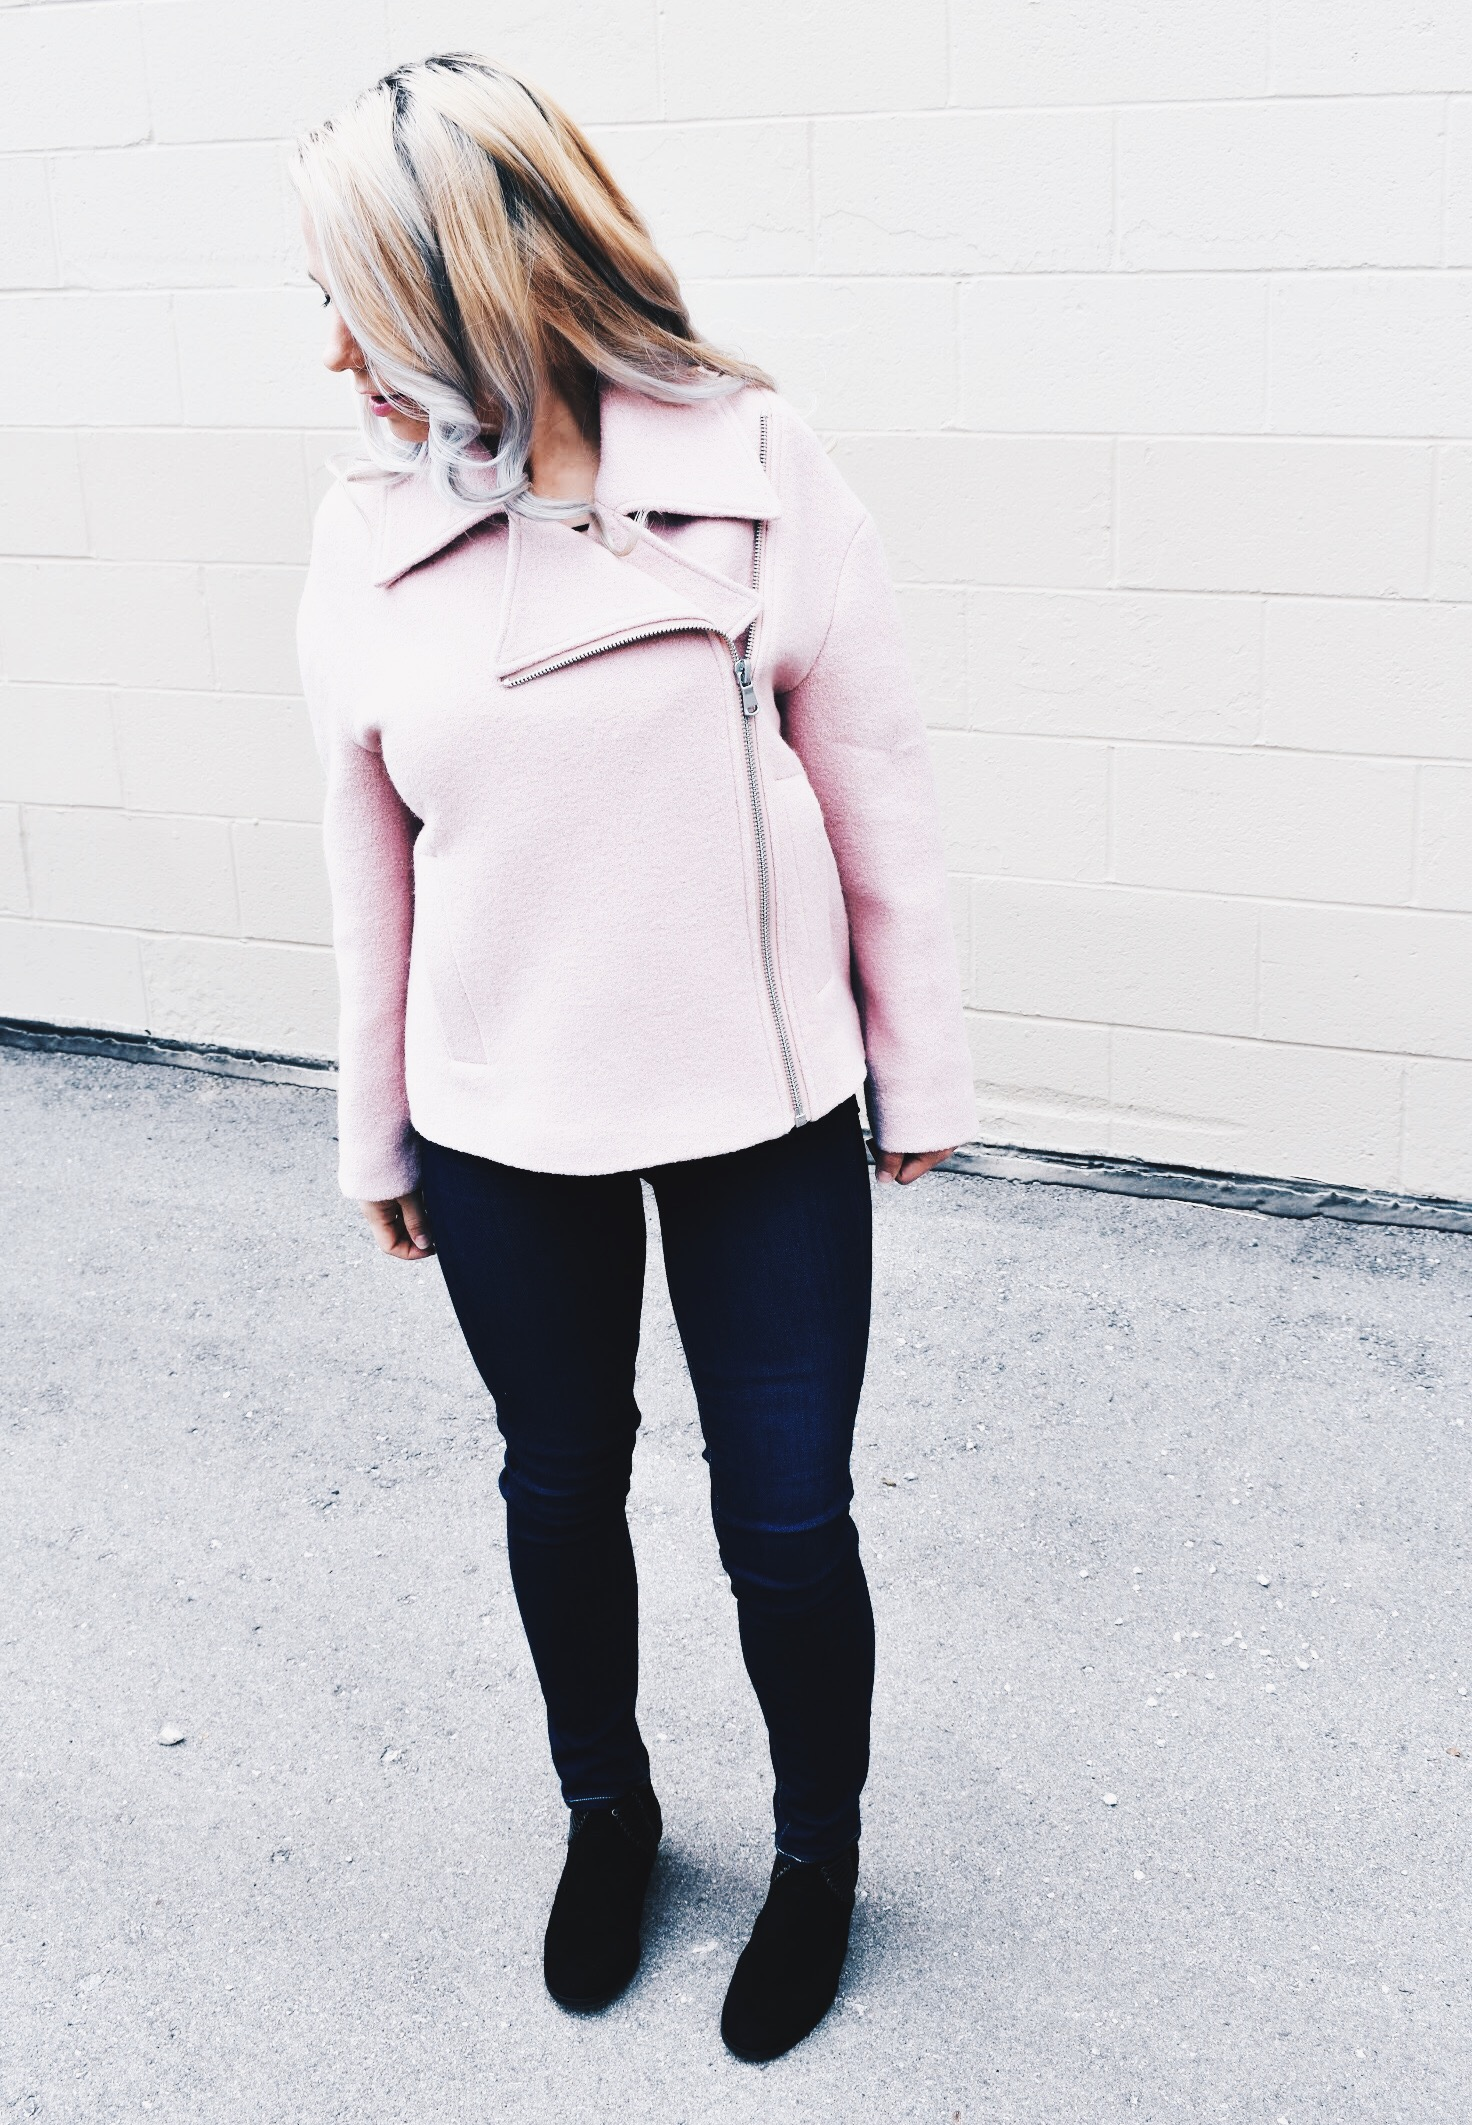 Pink Moto Jacket Outfit - Pink Moto Jacket Style Inspriation - How to Style a Pink Moto Jacket - What to Wear with a Pink Moto Jacket - Here's how to wear a pink moto jacket with items you probably already have in your closet! This is one of my favorite Nordstrom Anniversary Sale 2018 outfits because of this adorable Halogen Blended Wool Blend moto jacket on the NSALE 2018. #NSALE #FashionInspo #StyleInspo